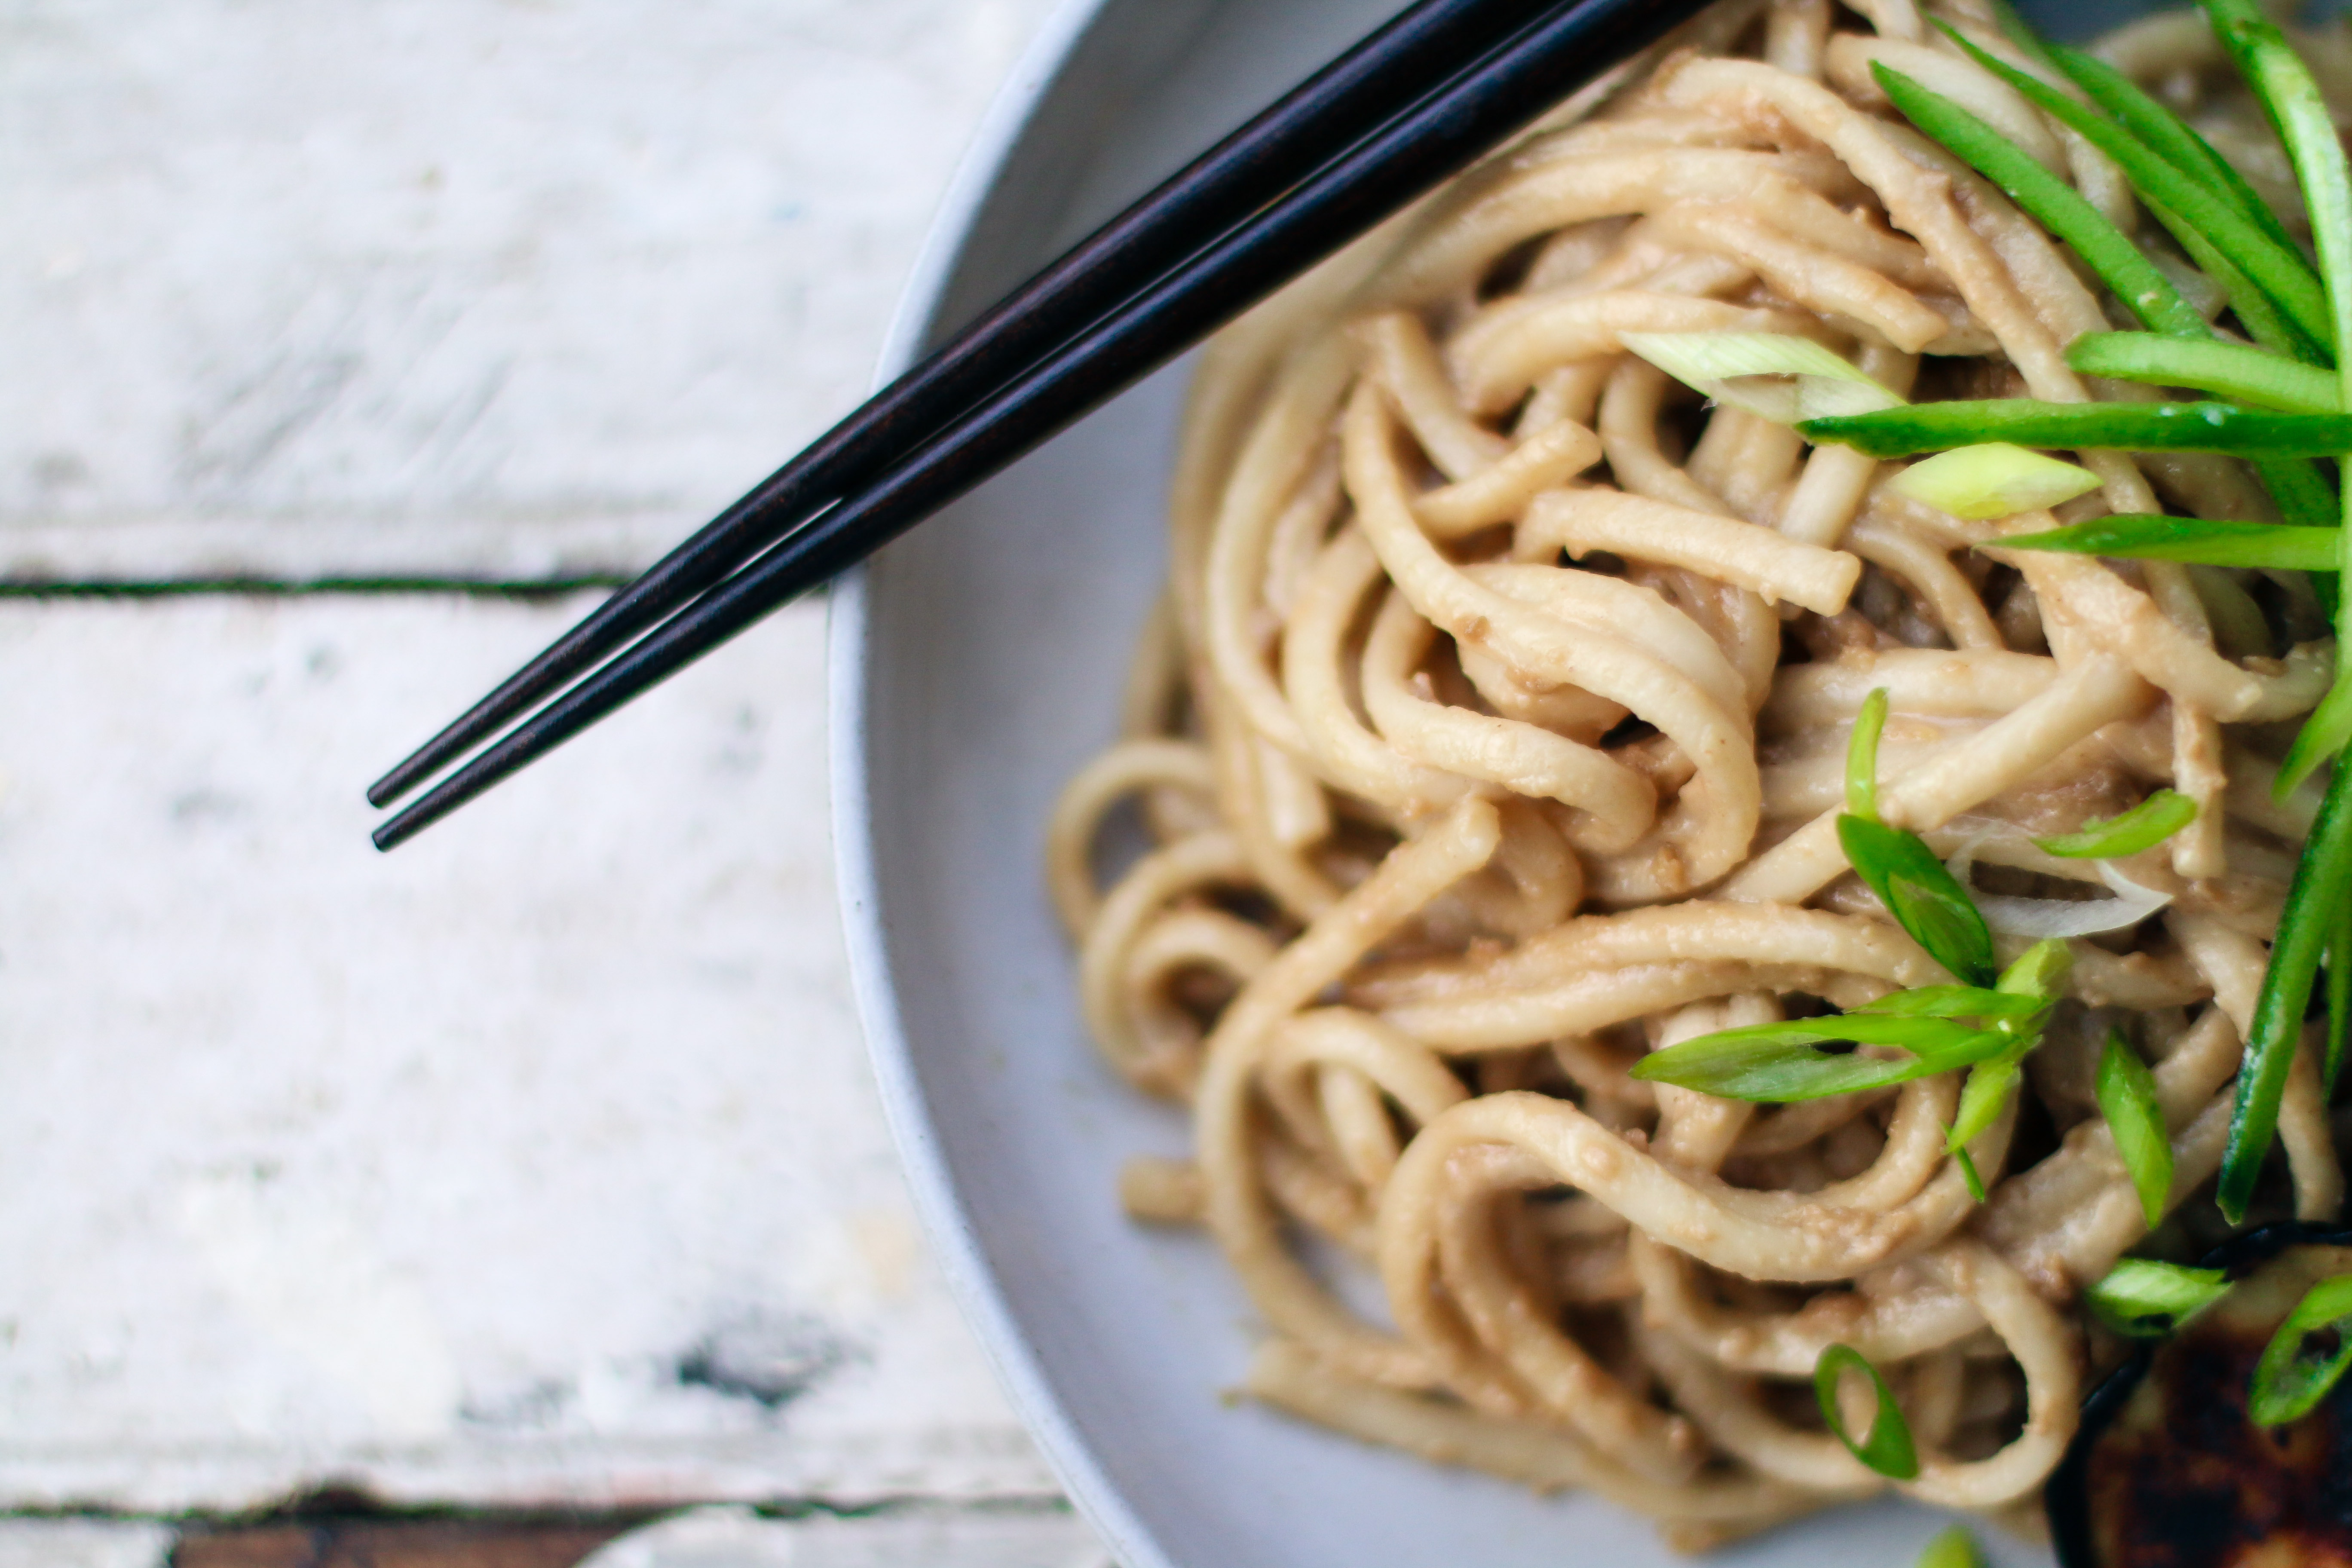 Tahini Udon Noodles with Roasted Eggplants | Japan meets Middle East | I Wi